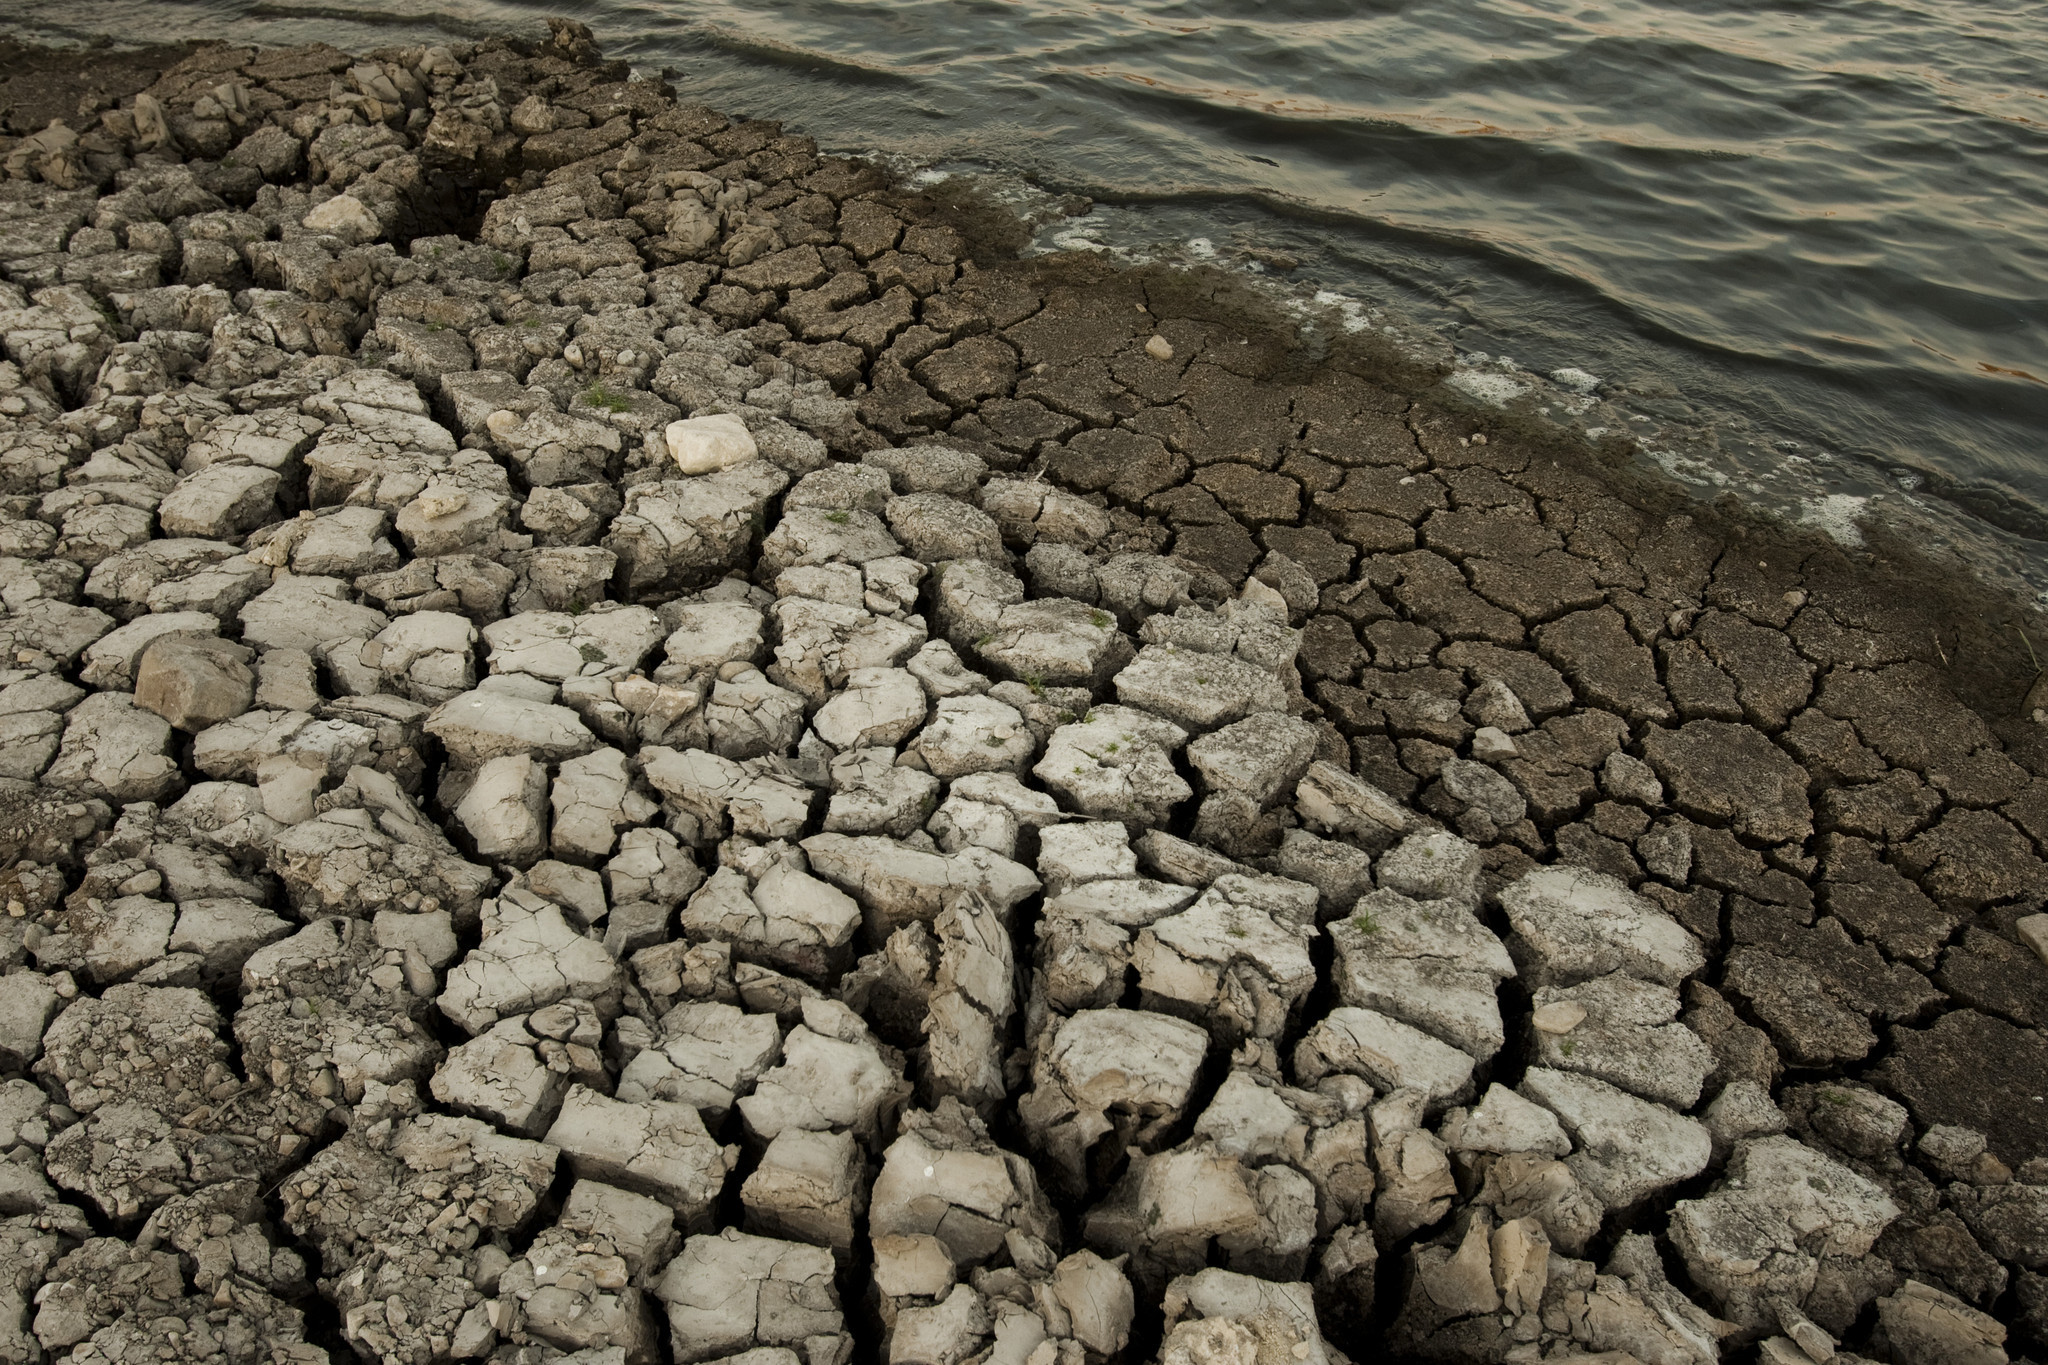 california drought and climate warming studies no clear link california drought and climate warming studies no clear link la times